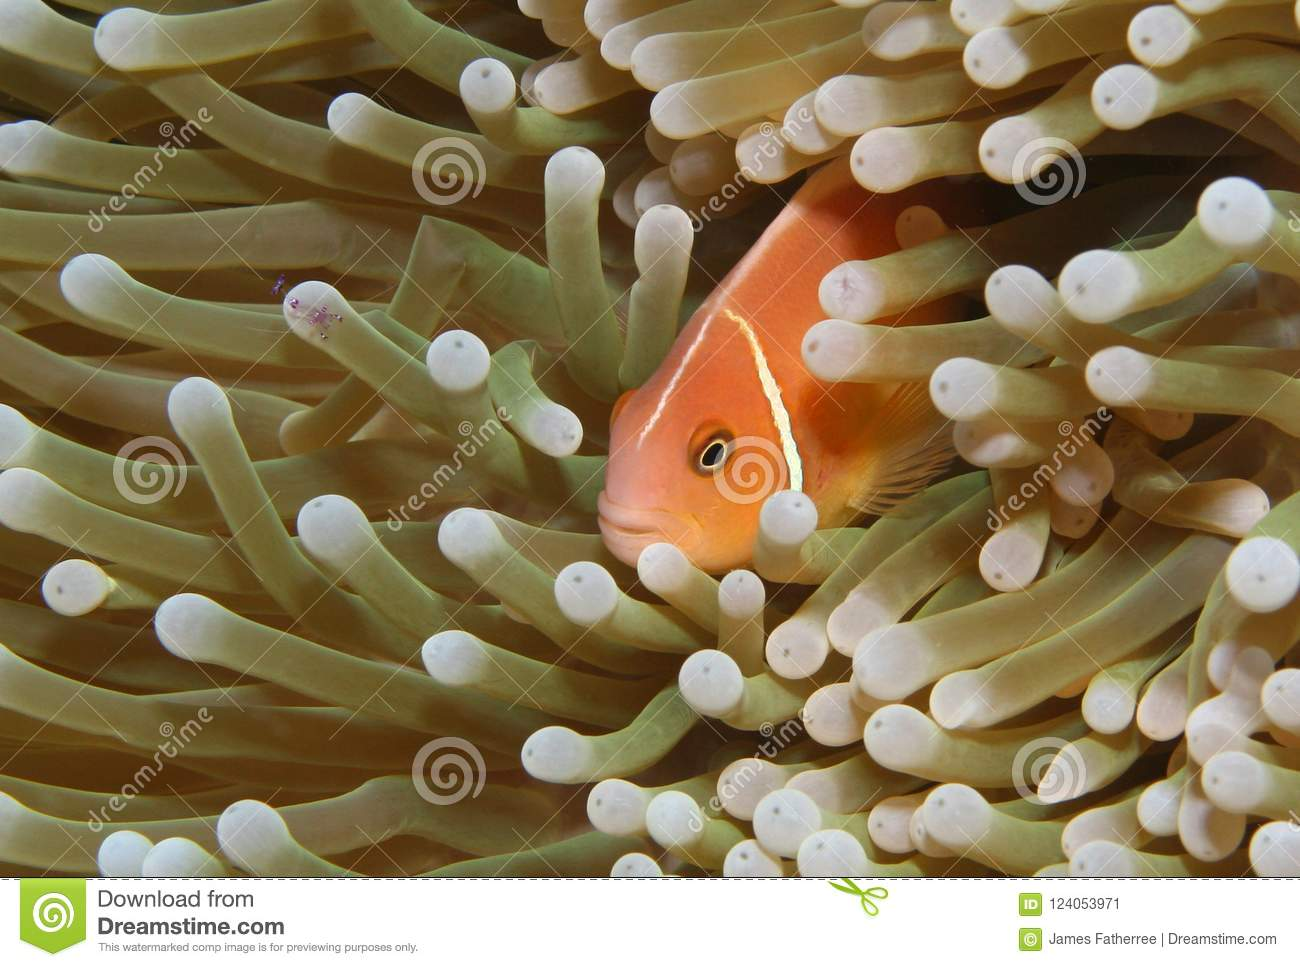 A clownfish and shrimp in a sea anemone.